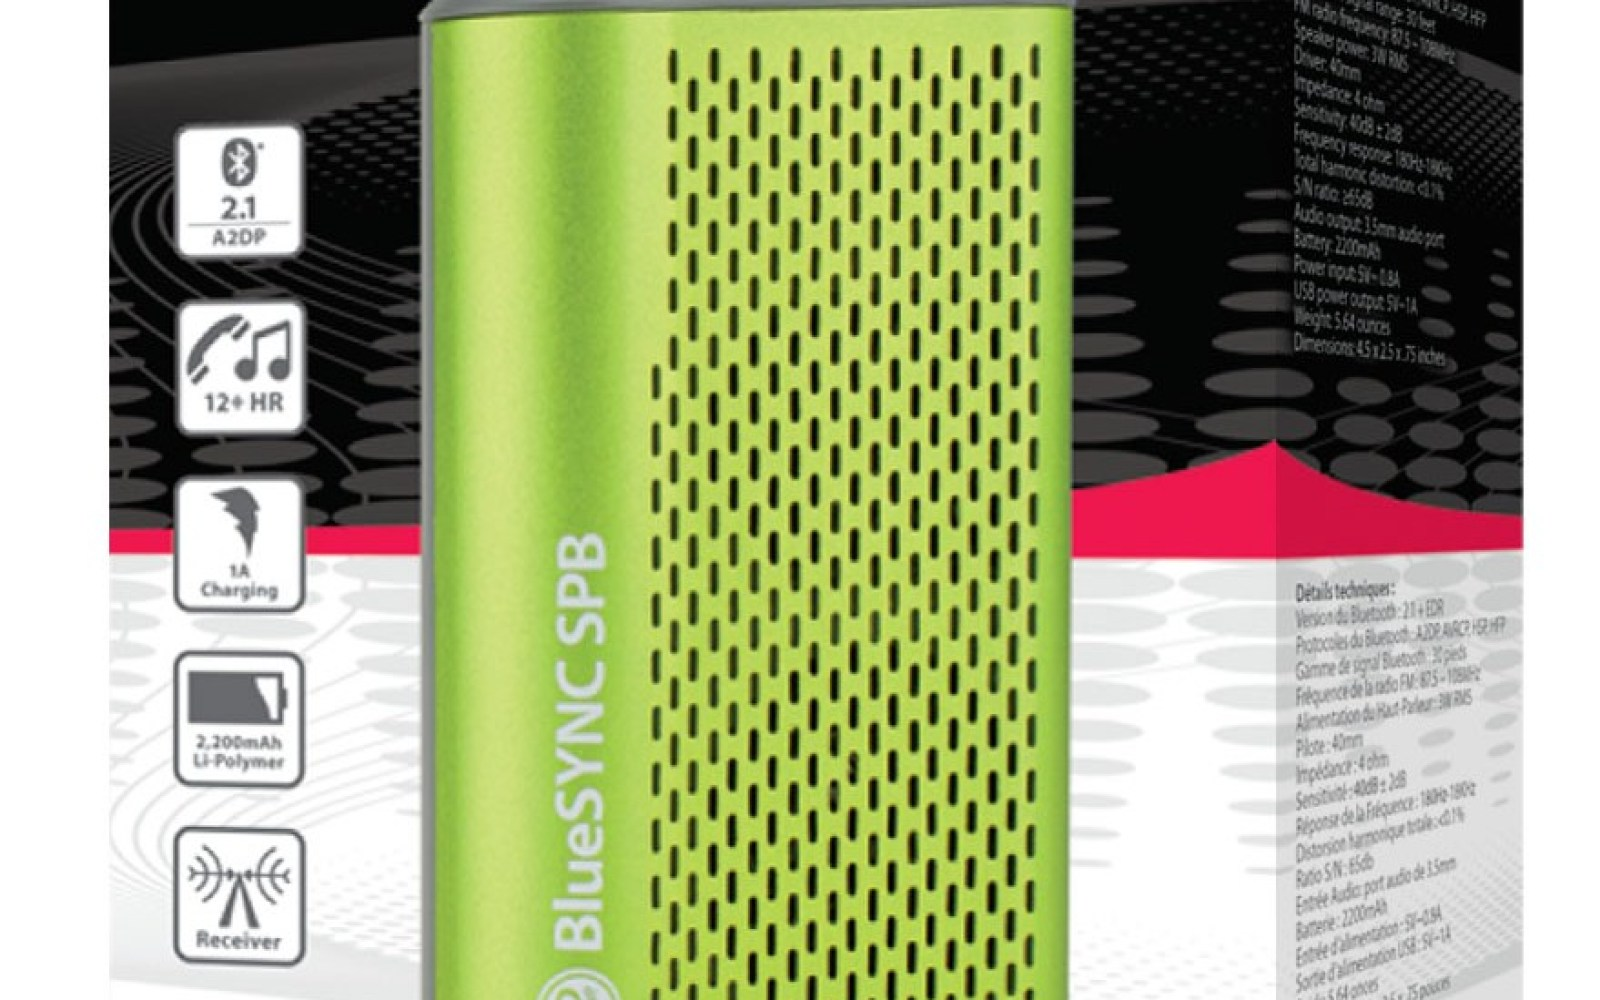 Quick look: The BlueSYNC SPB is an All-in-One Bluetooth speaker w/ FM radio, 2200mAH Powerbank, and more